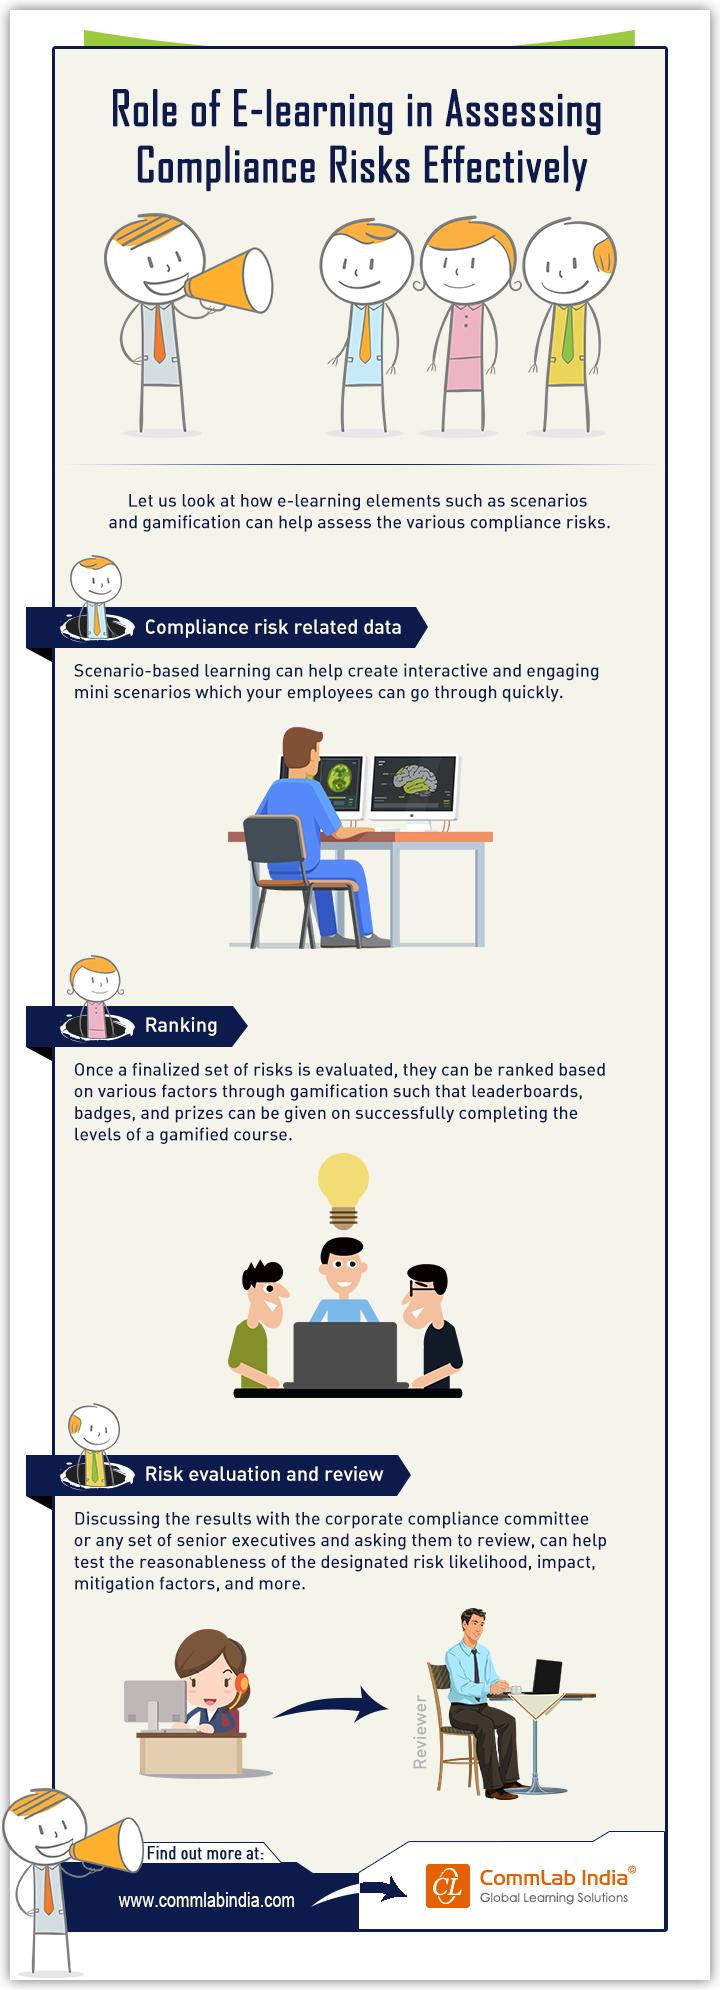 The Role of E-learning in Assessing Compliance Risks Effectively [Infographic]